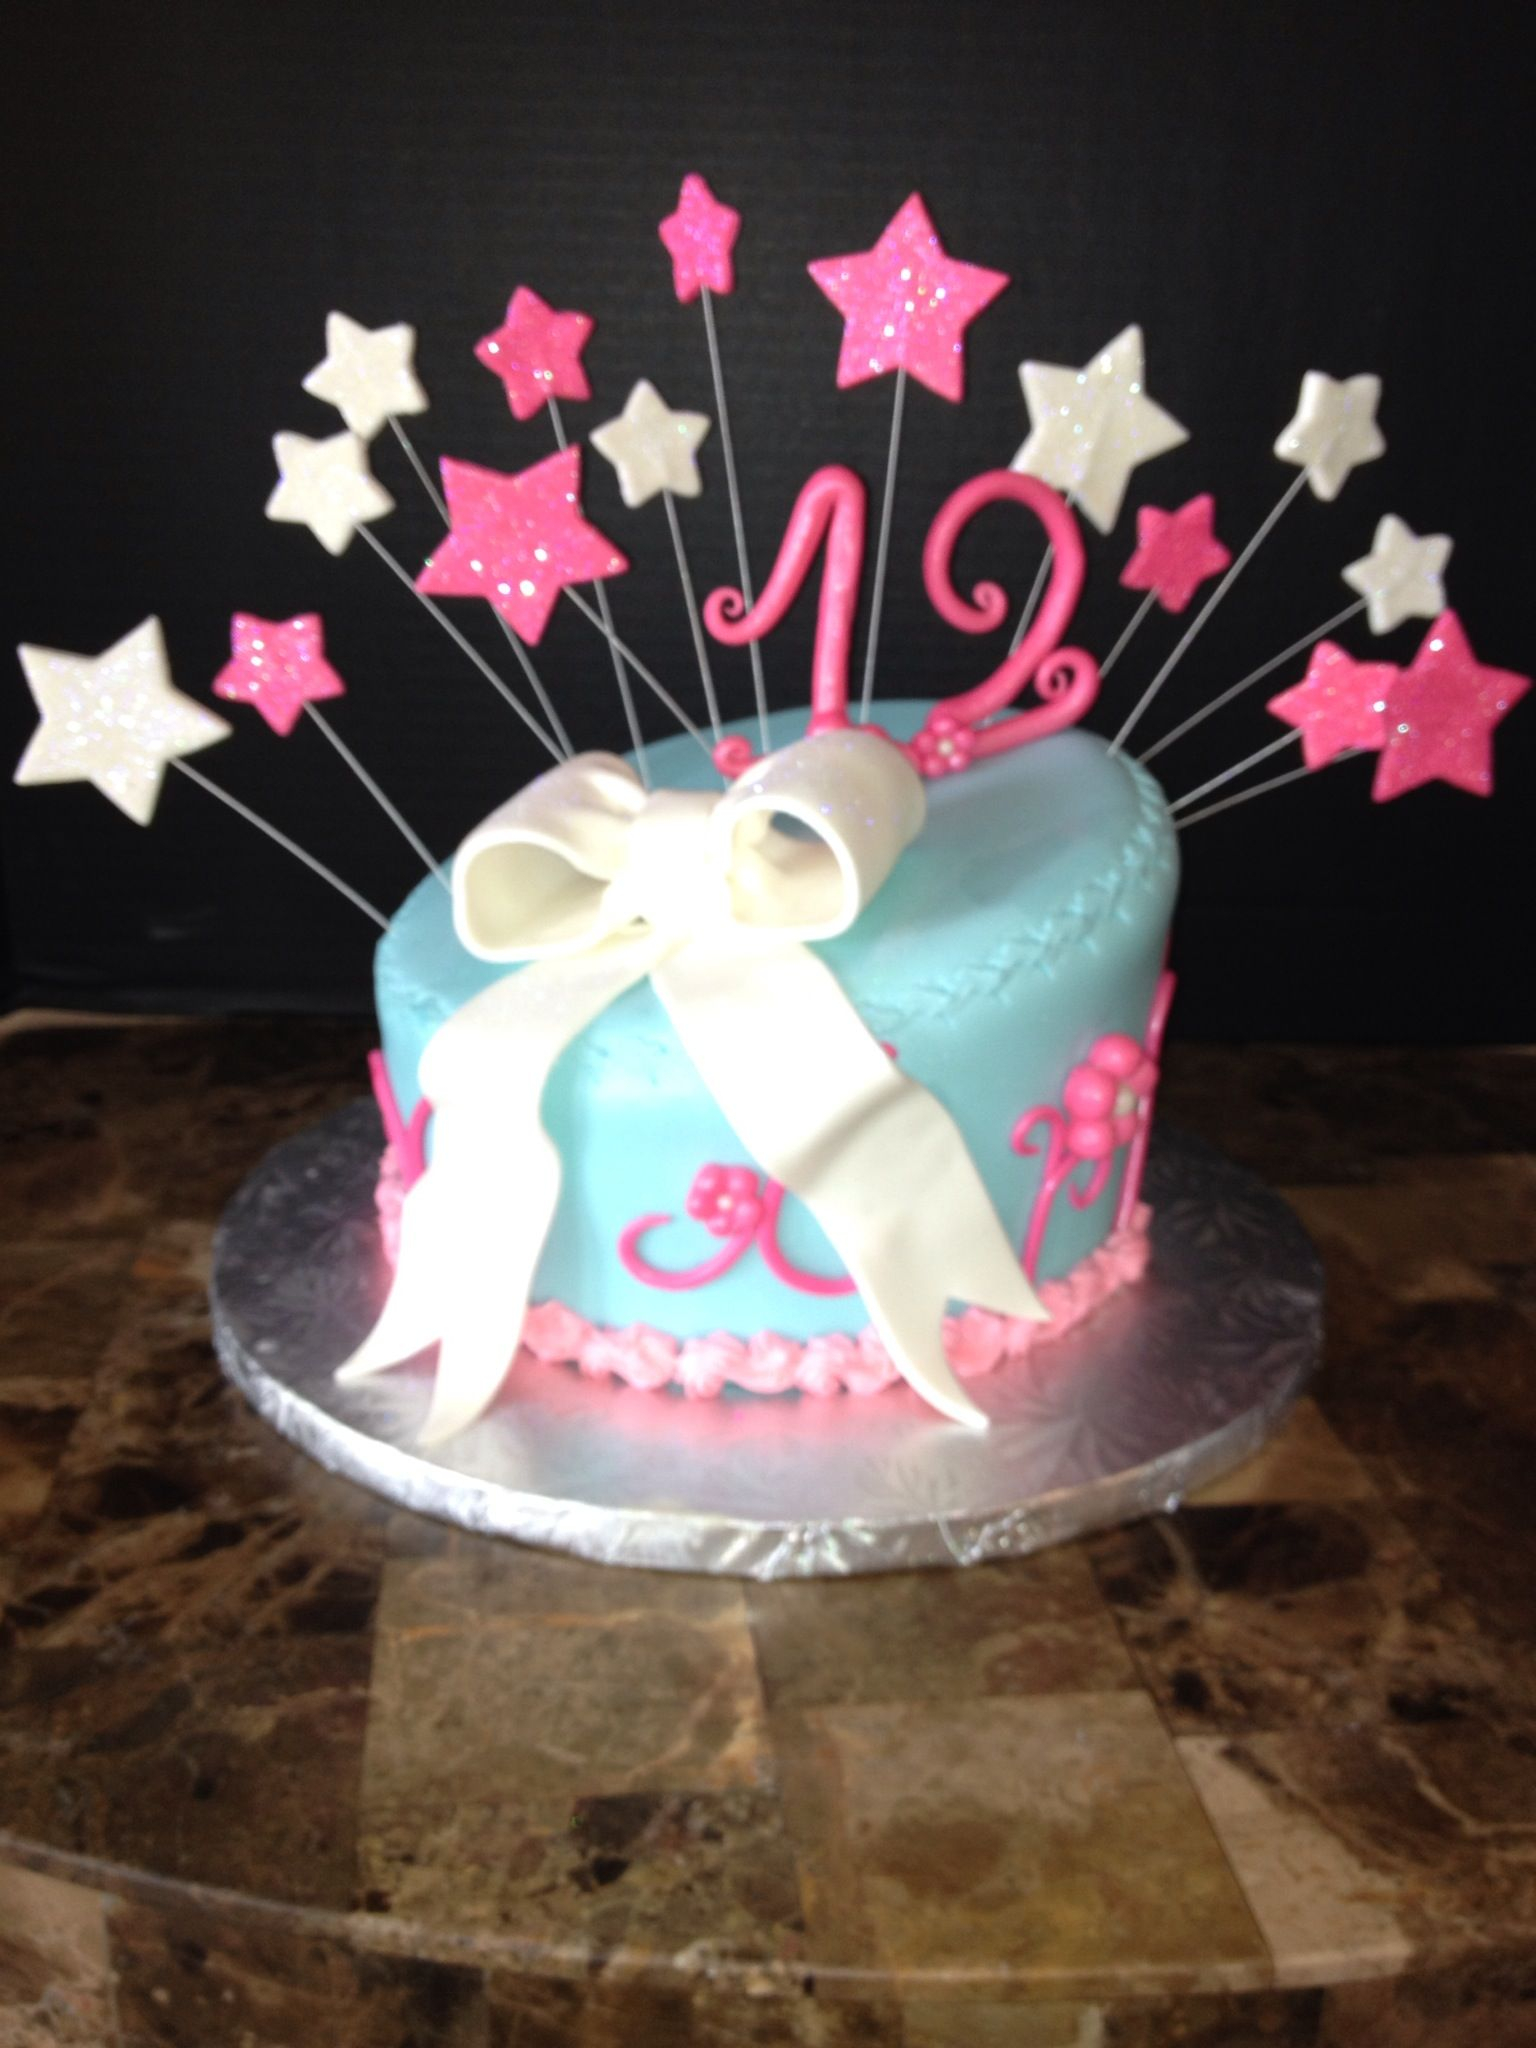 30 Great Image of 12Th Birthday Cake